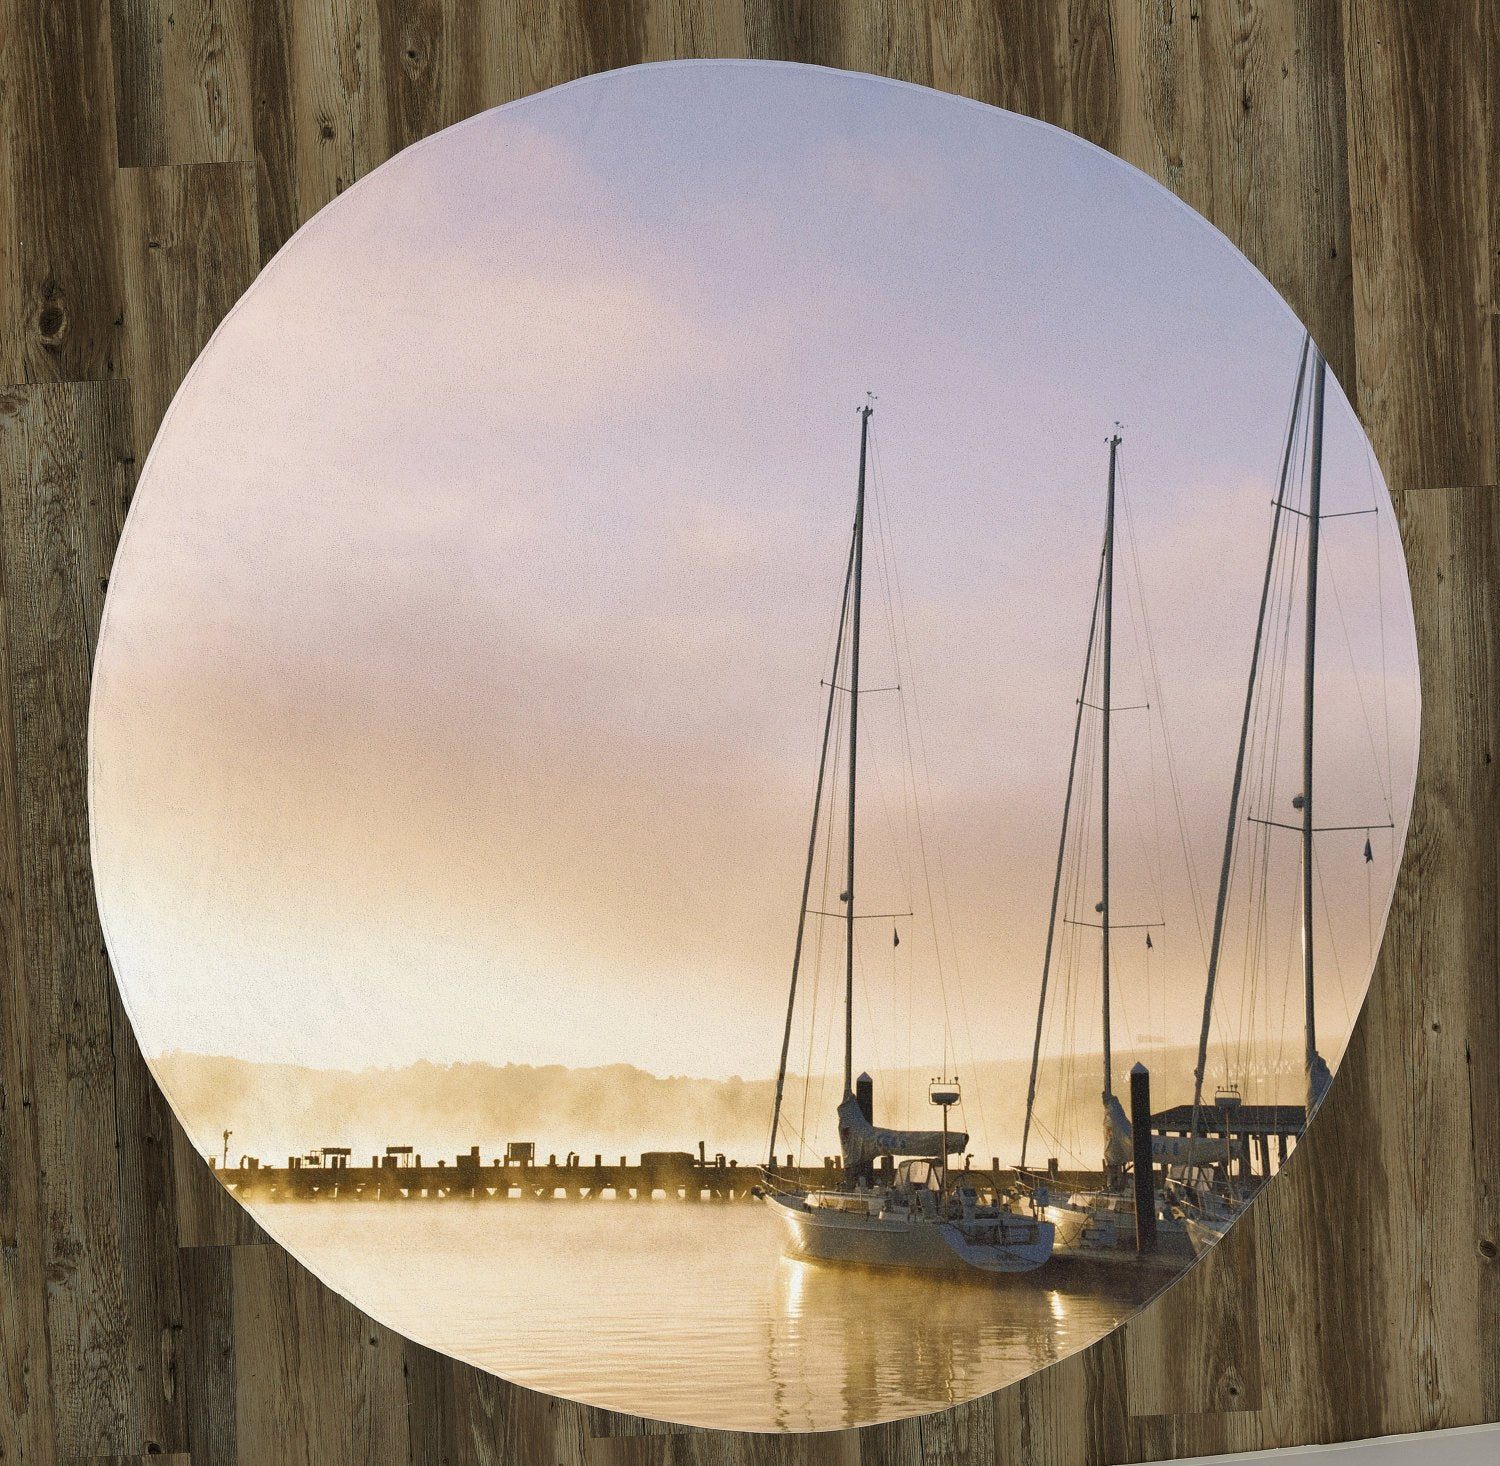 "Sailboats at Sunset 60"" Round Microfiber Beach Towel"